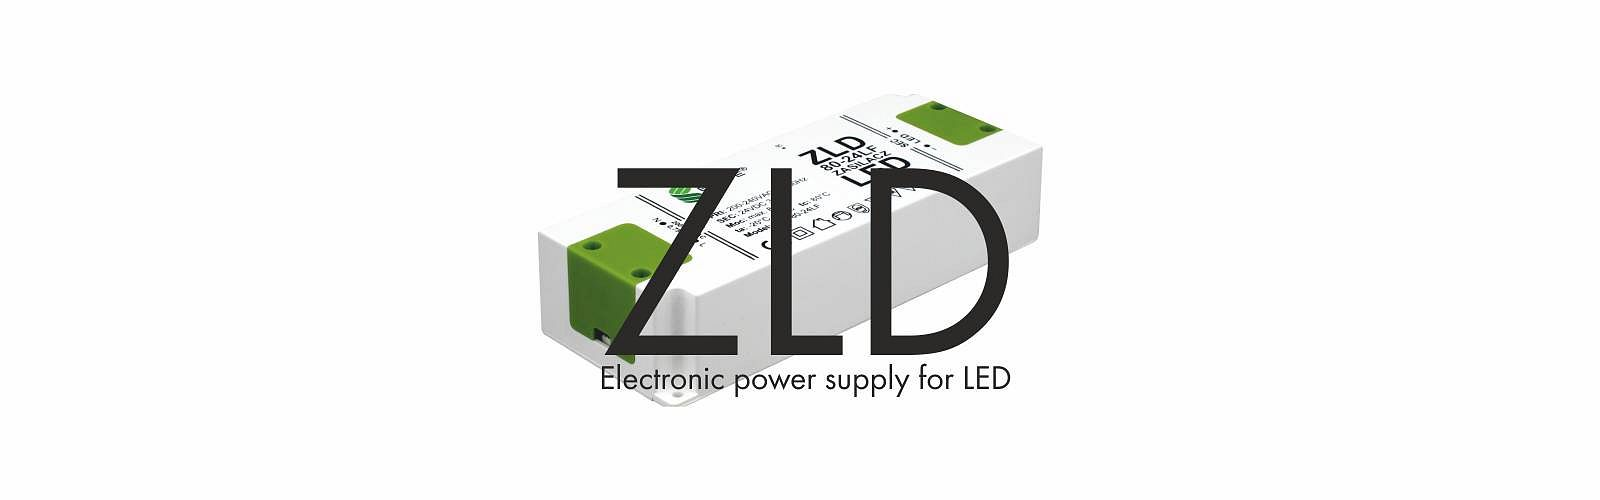 electronic power supply led